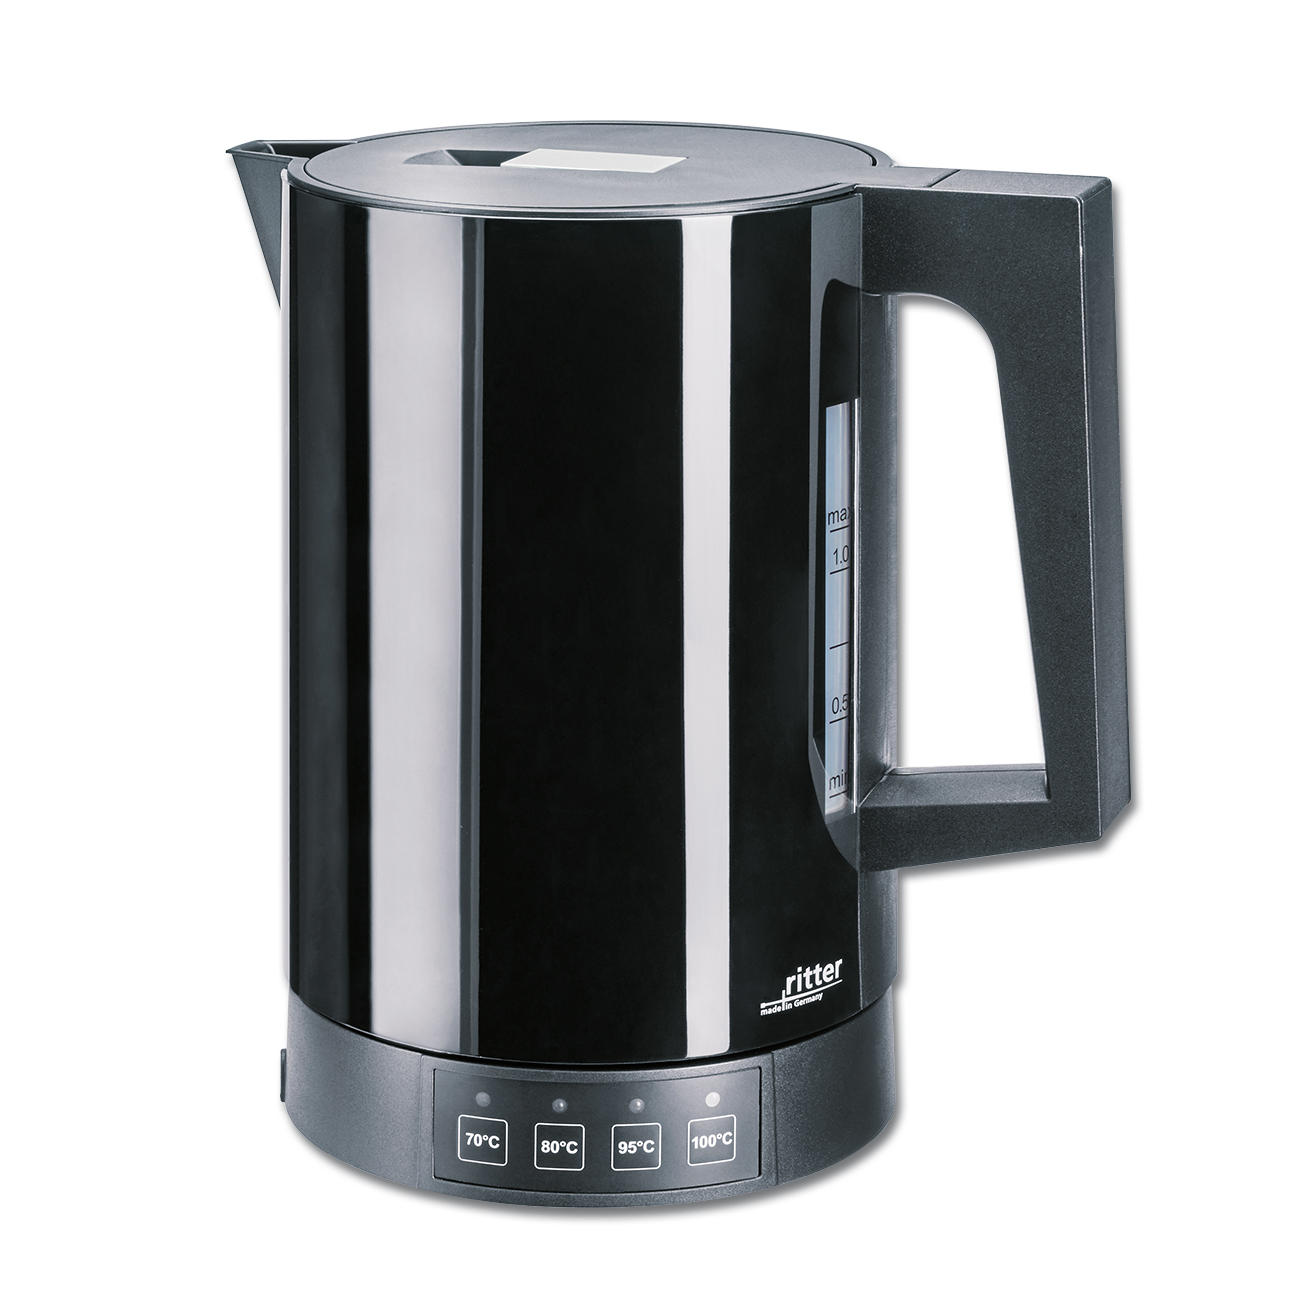 Electric Kettle Made In Germany ~ Buy breakfast set by ritter year product guarantee